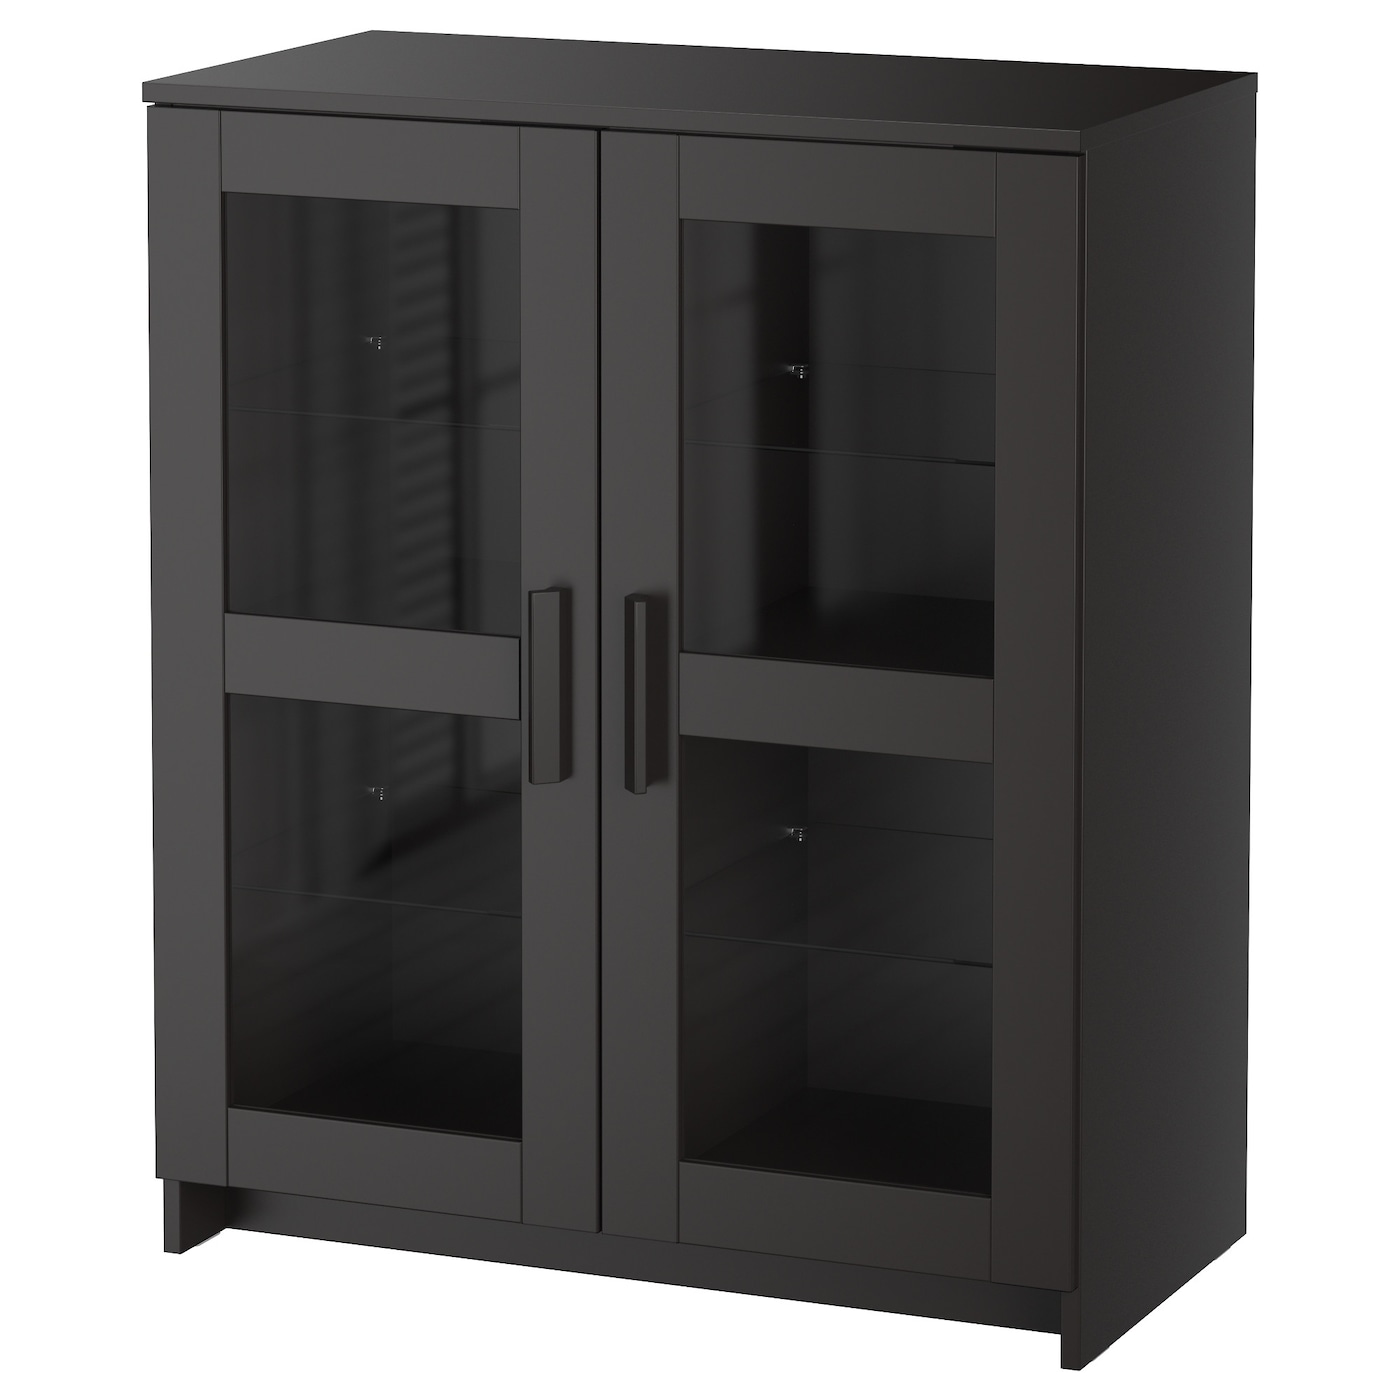 brimnes armoire avec portes verre noir 78 x 95 cm ikea. Black Bedroom Furniture Sets. Home Design Ideas